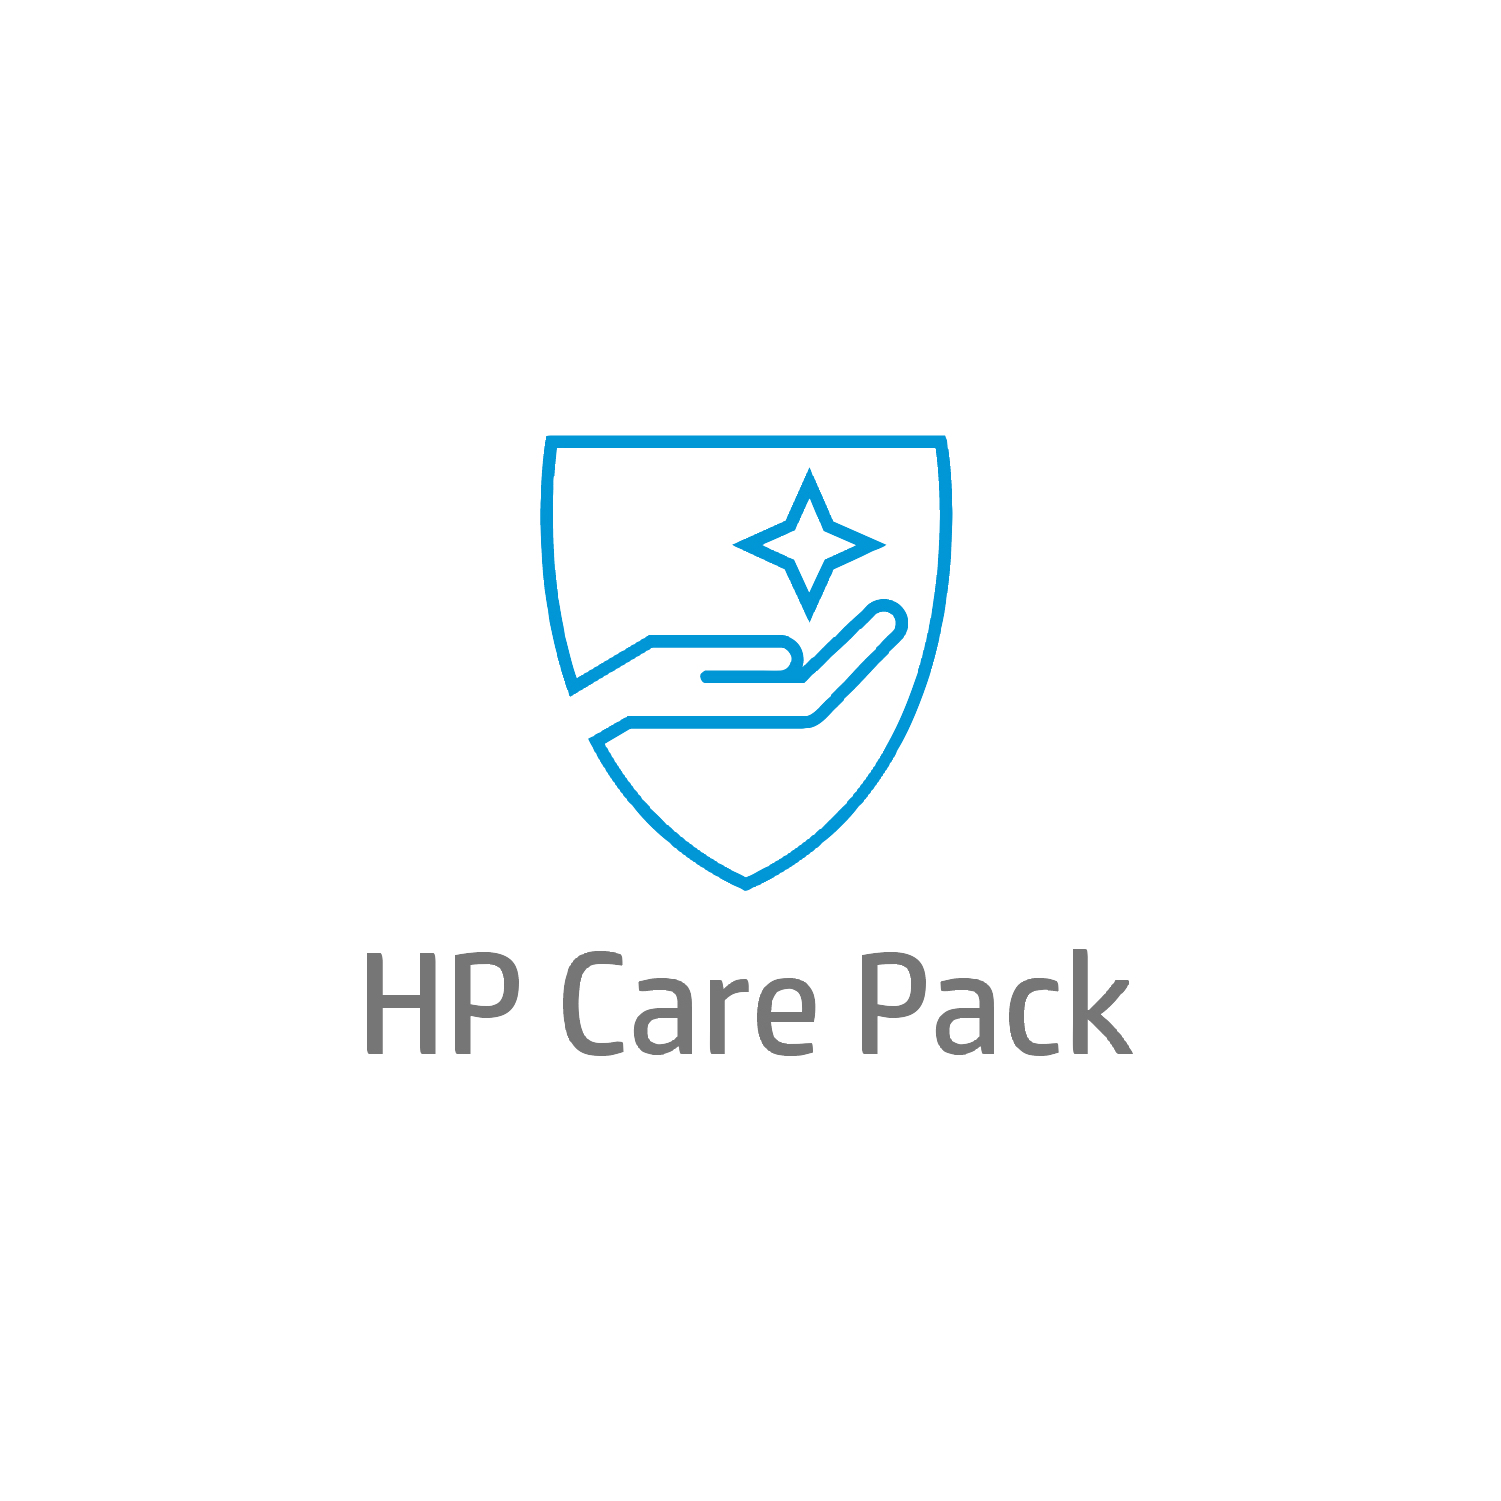 HP 3 year Premier Care Expanded Hardware support for Notebooks